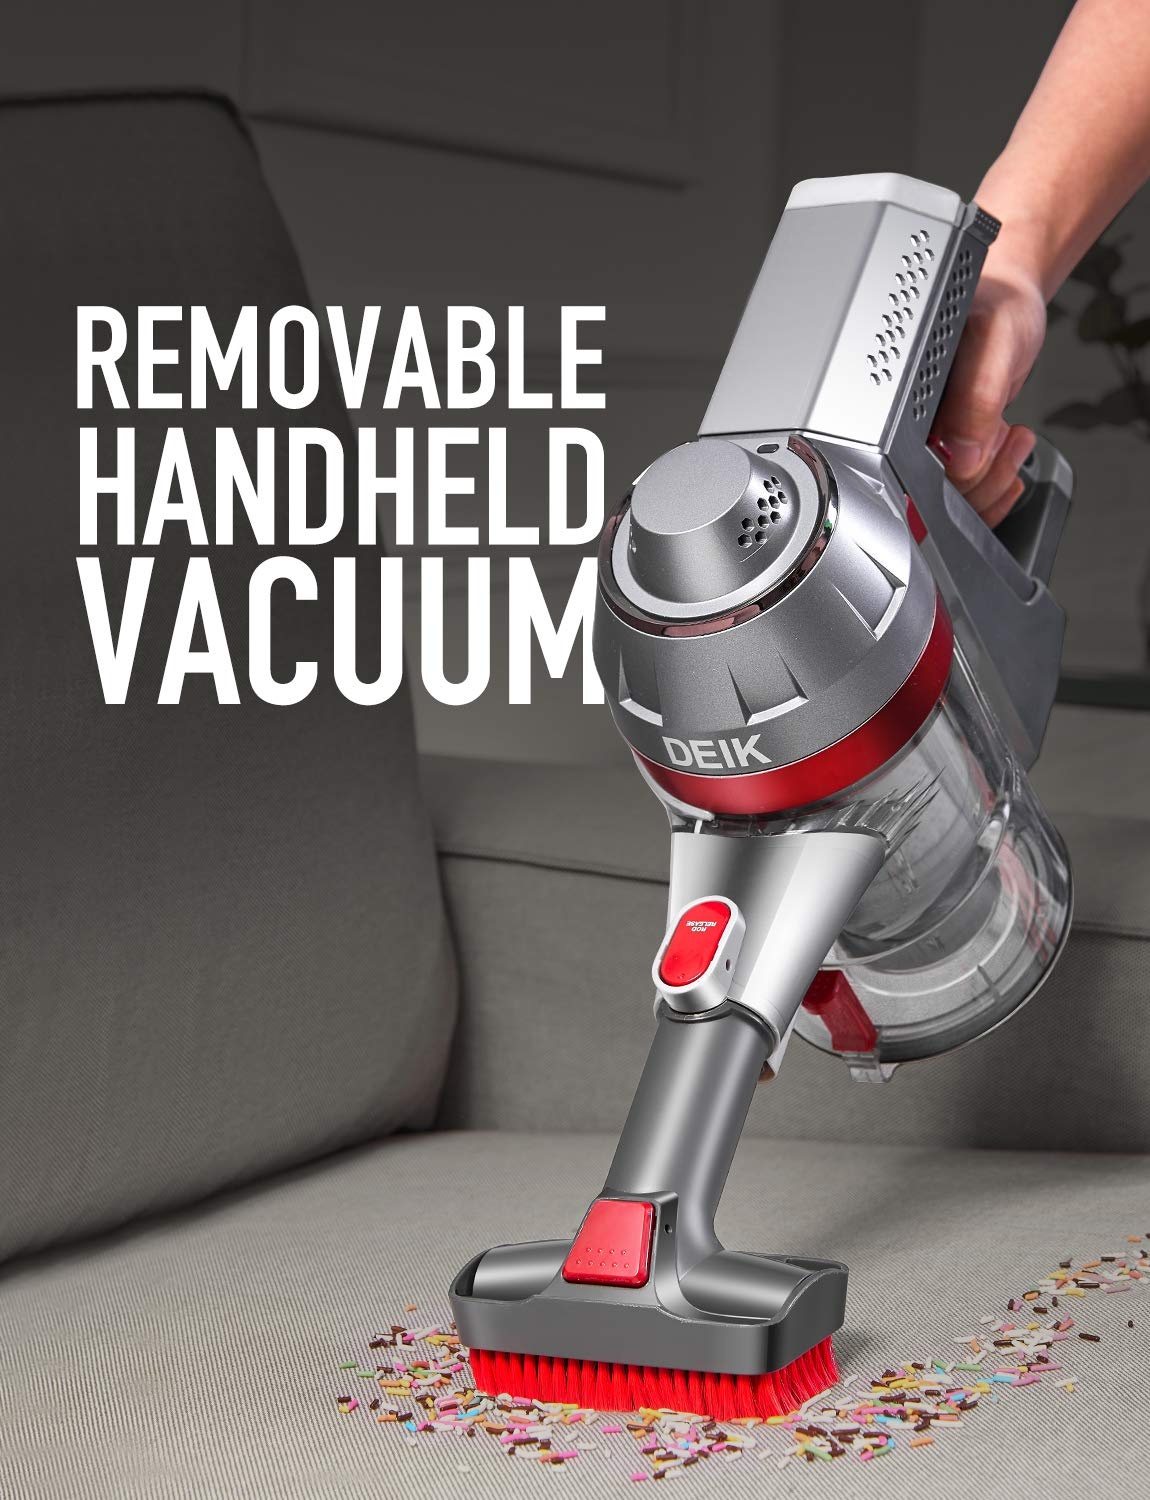 2 in 1 Stick Handheld Vacuum with Powerful Suction /& LED Brush for Home and Car Cleaning Silver Deik Cordless Vacuum Cleaner